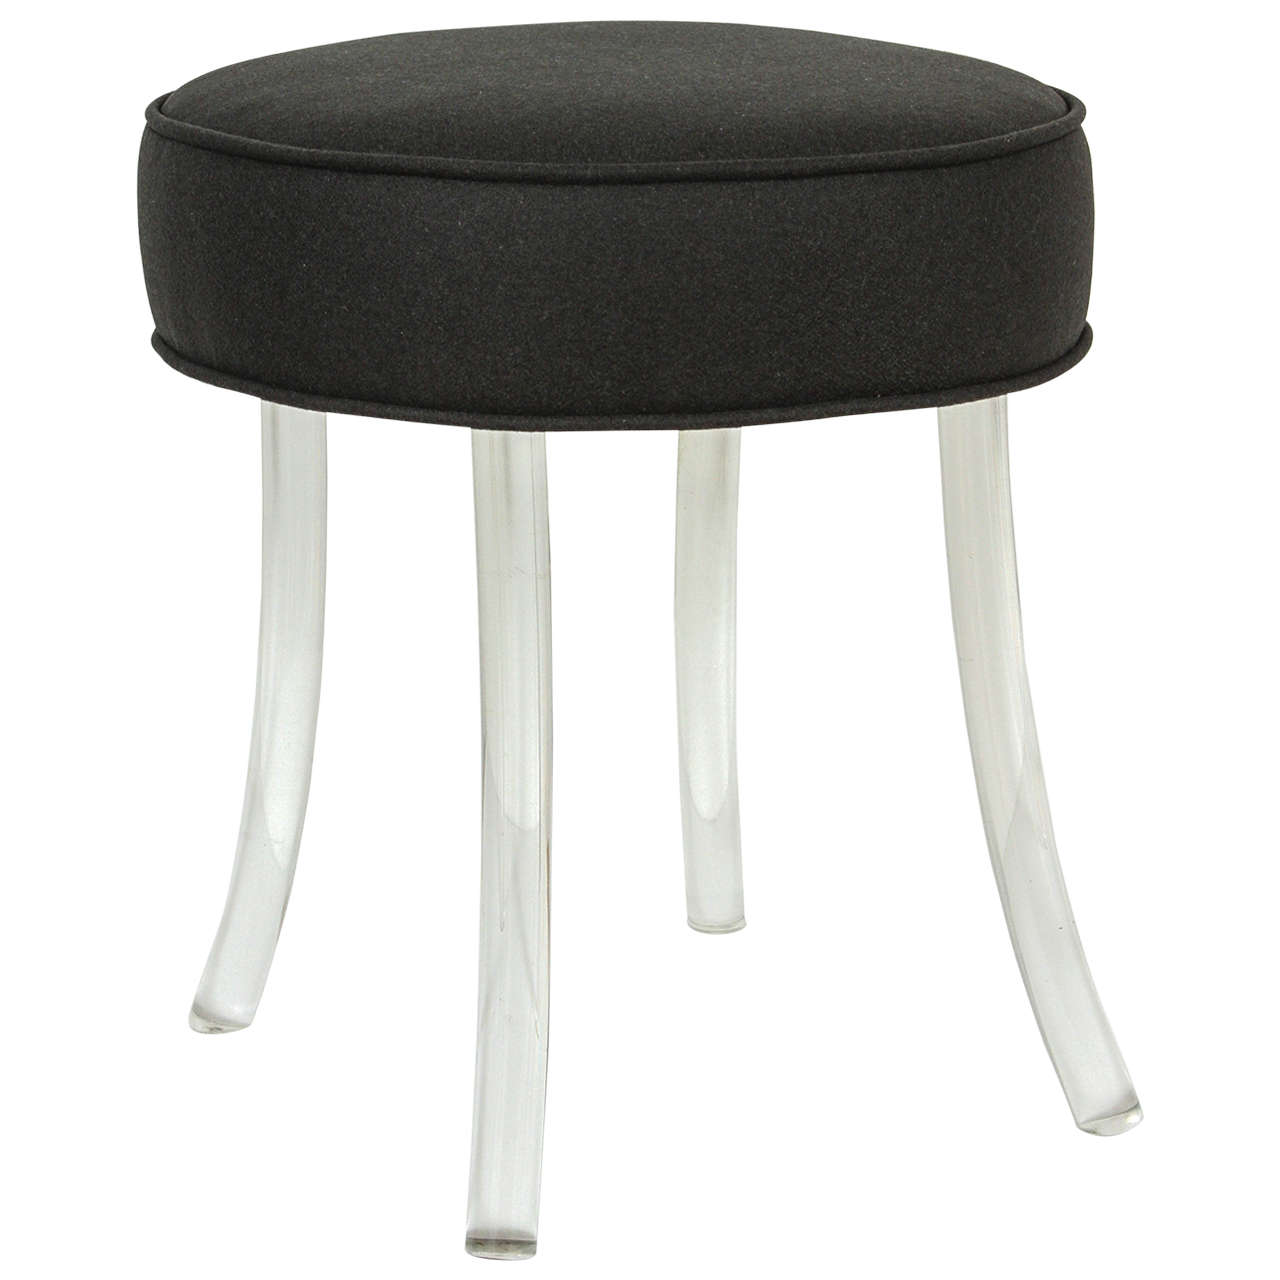 Upholstered Vanity Chair Upholstered William Haines Vanity Stool With Lucite Legs